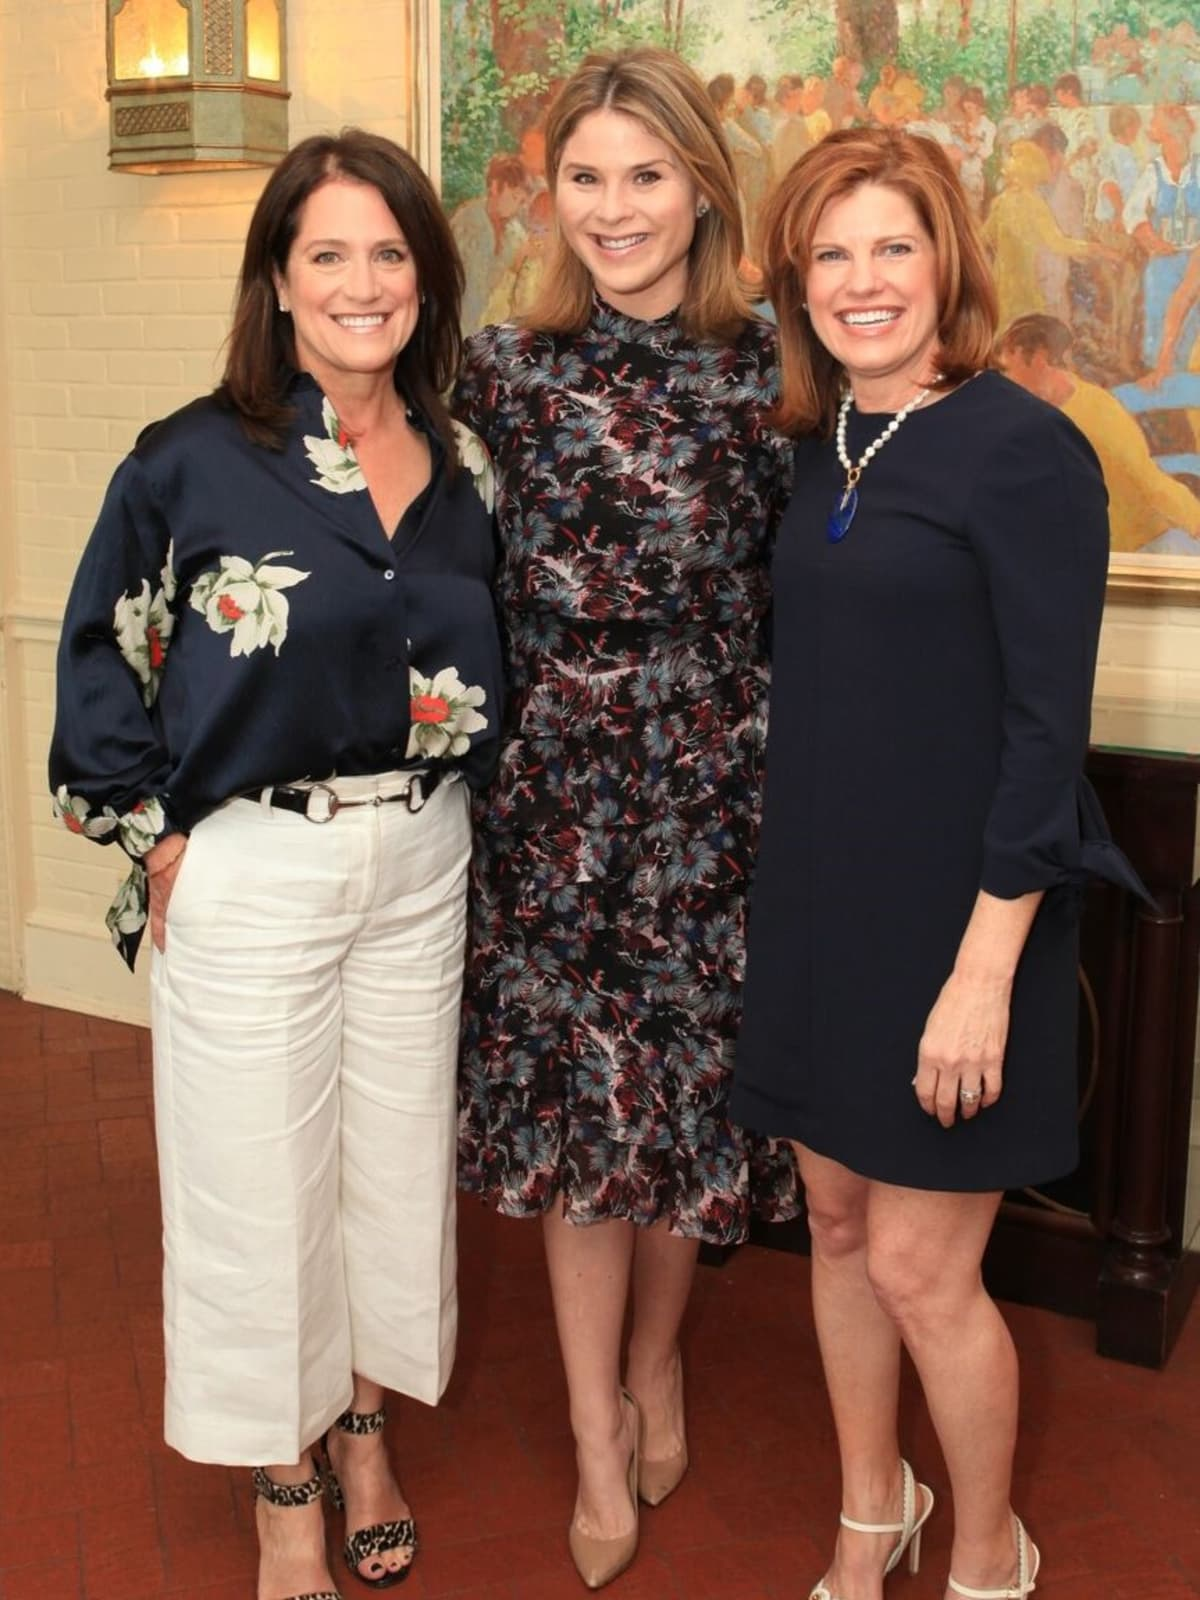 PCHPS luncheon 2018, Tish Key, Luncheon chair; Jenna Bush Hager, featured speaker; Lucinda Buford, PCHPS president